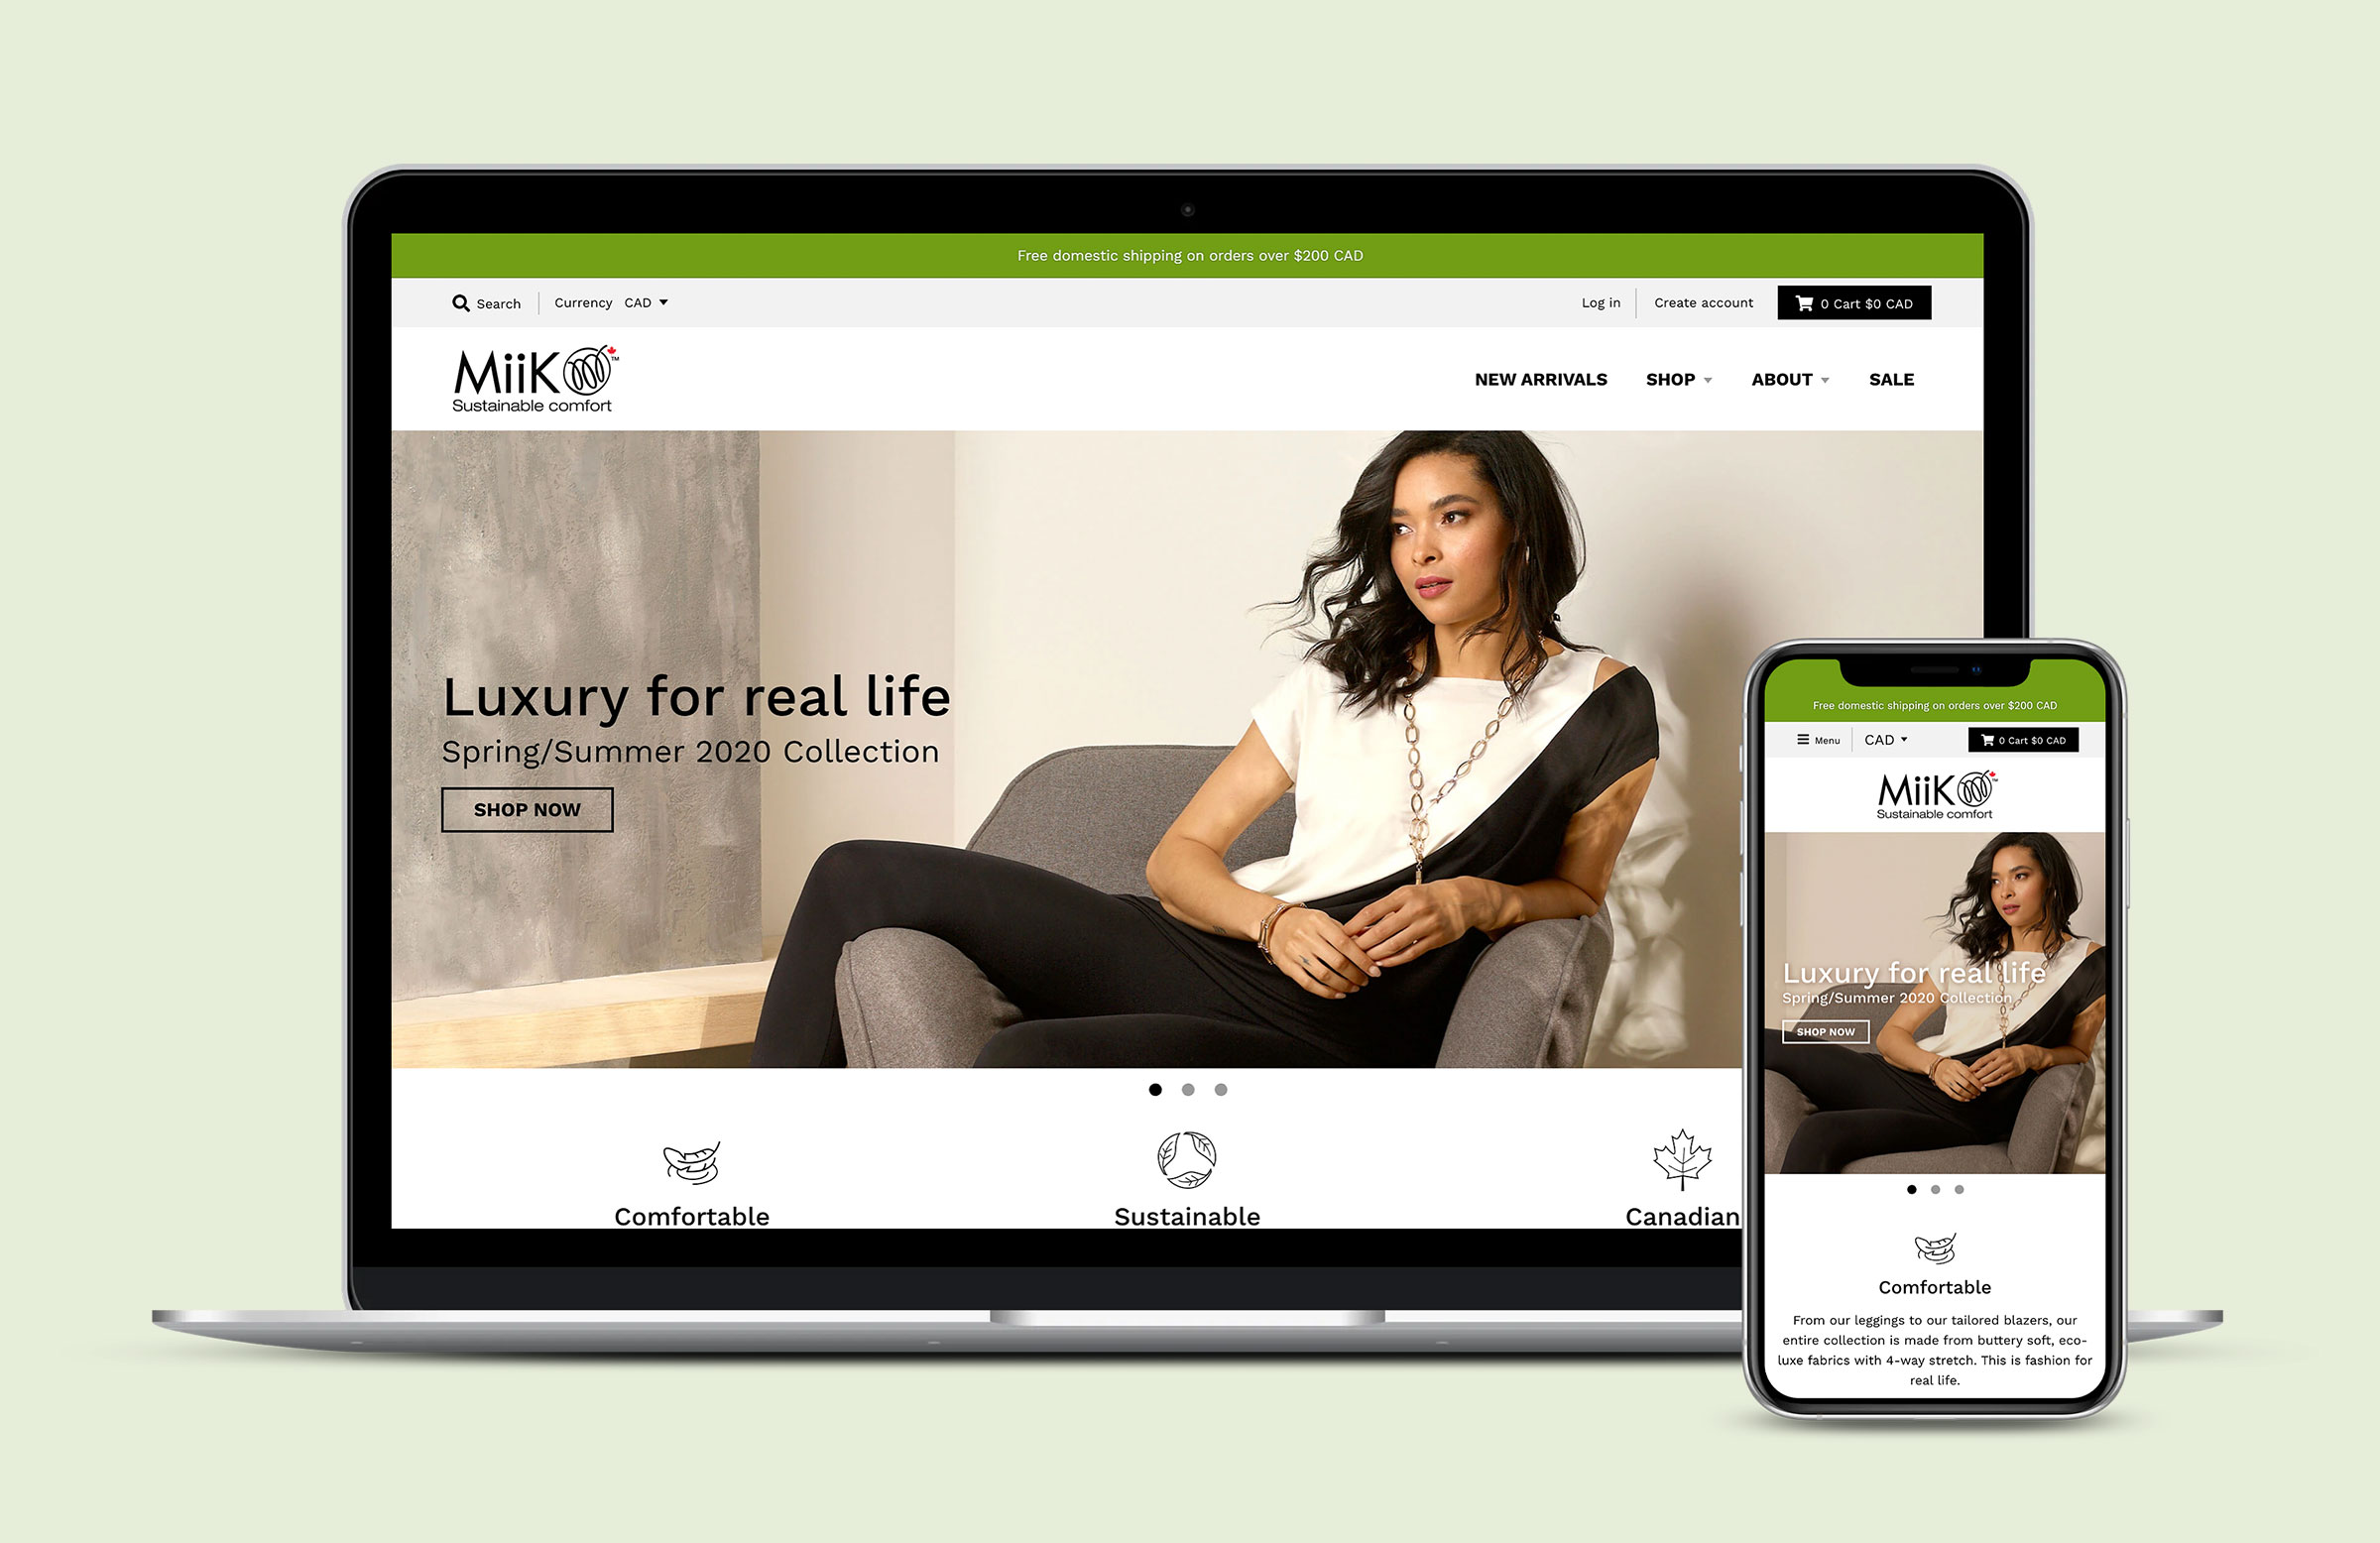 Miik homepage shown on a laptop and iPhone